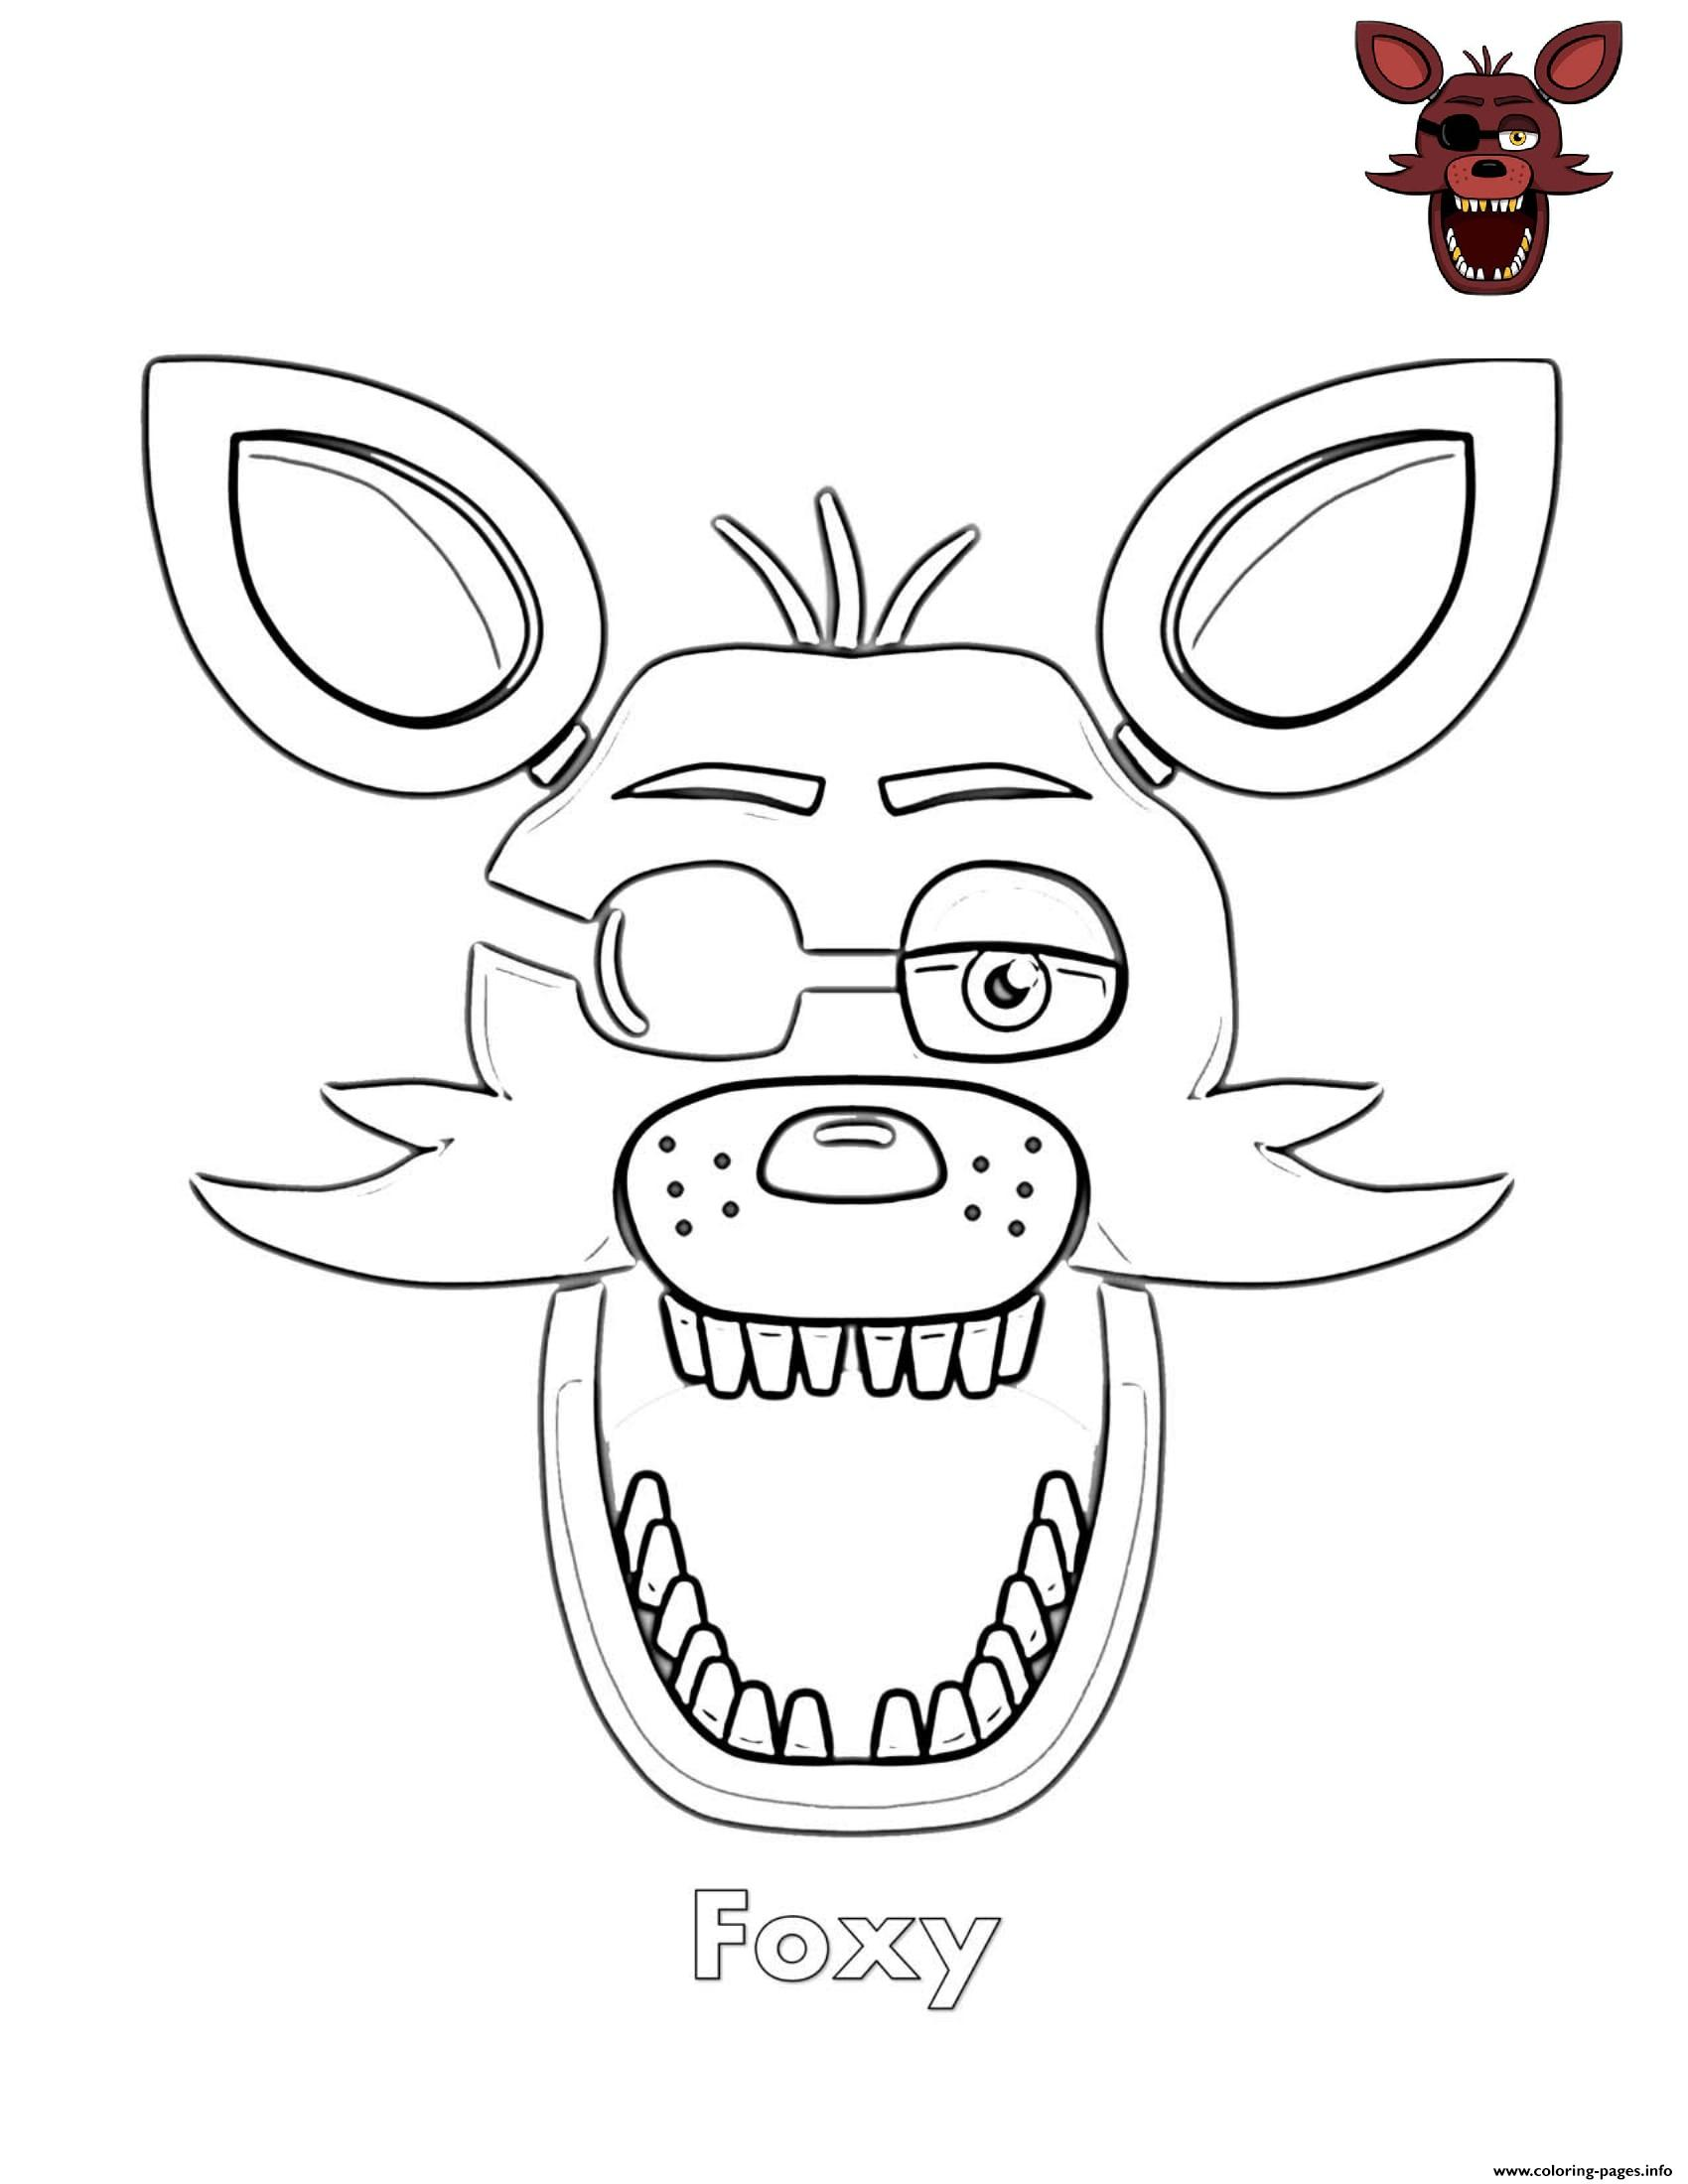 This is a photo of Ridiculous fnaf foxy coloring pages